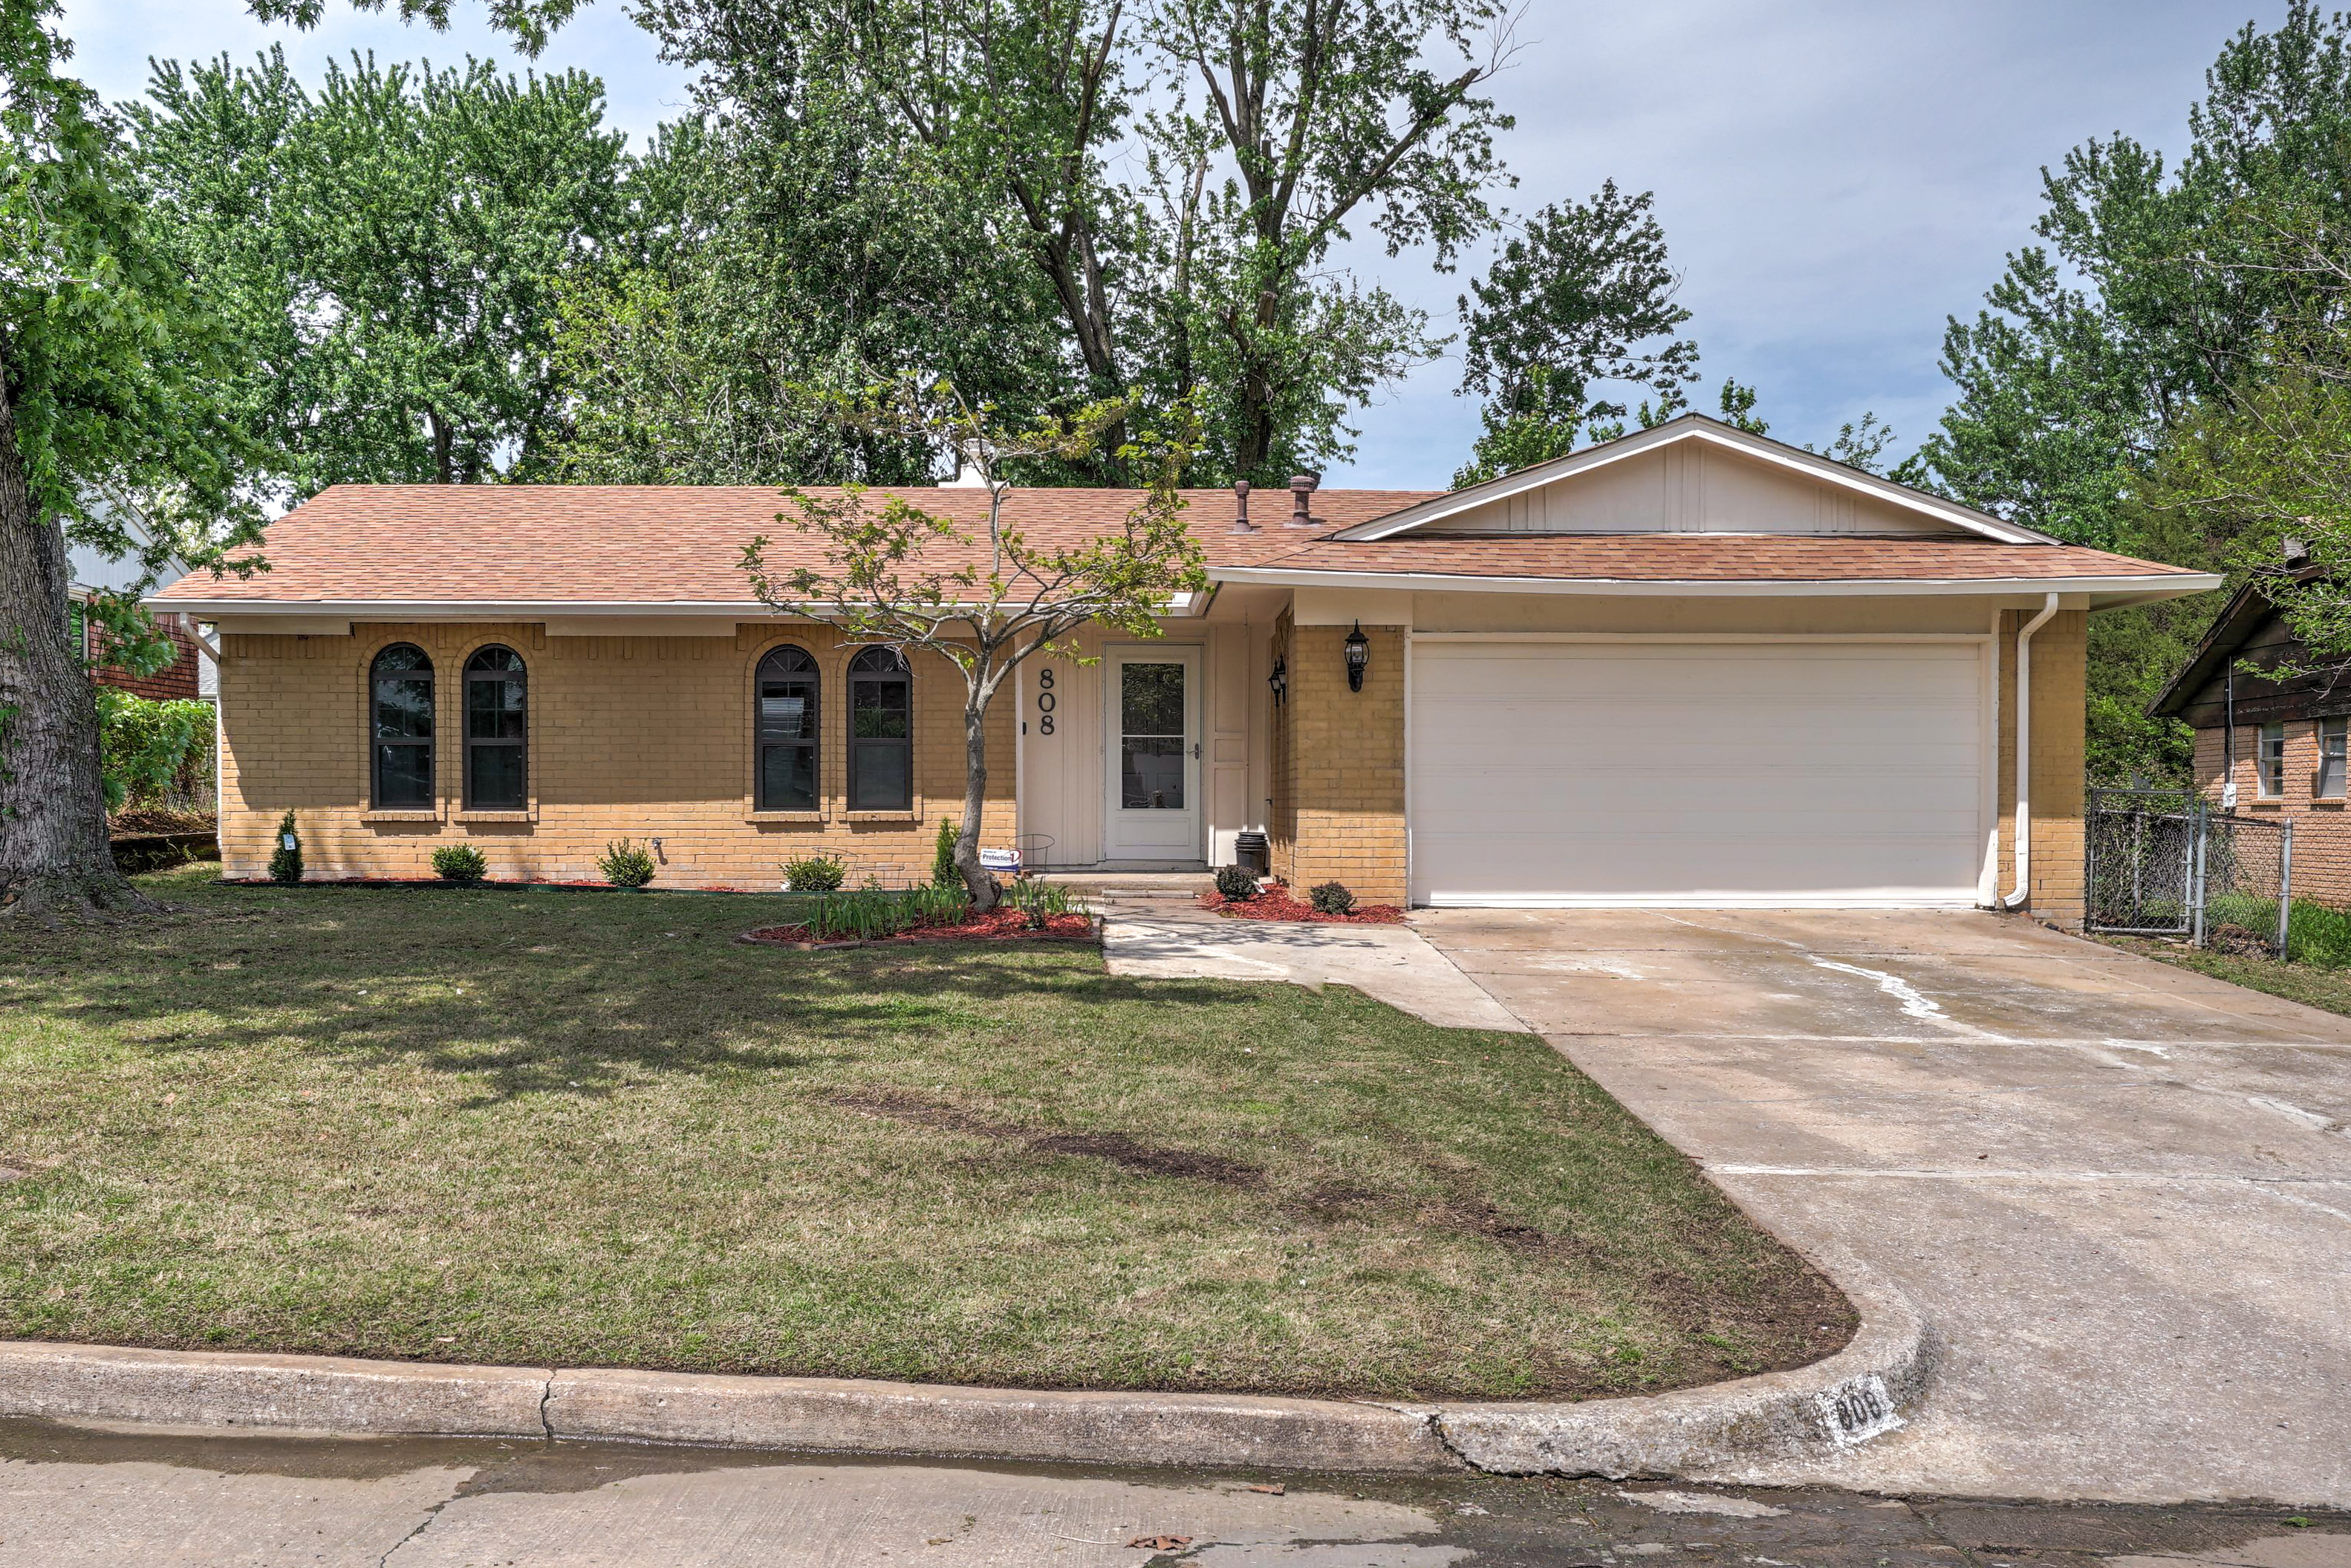 808 N Moccasin Street Property Photo 1